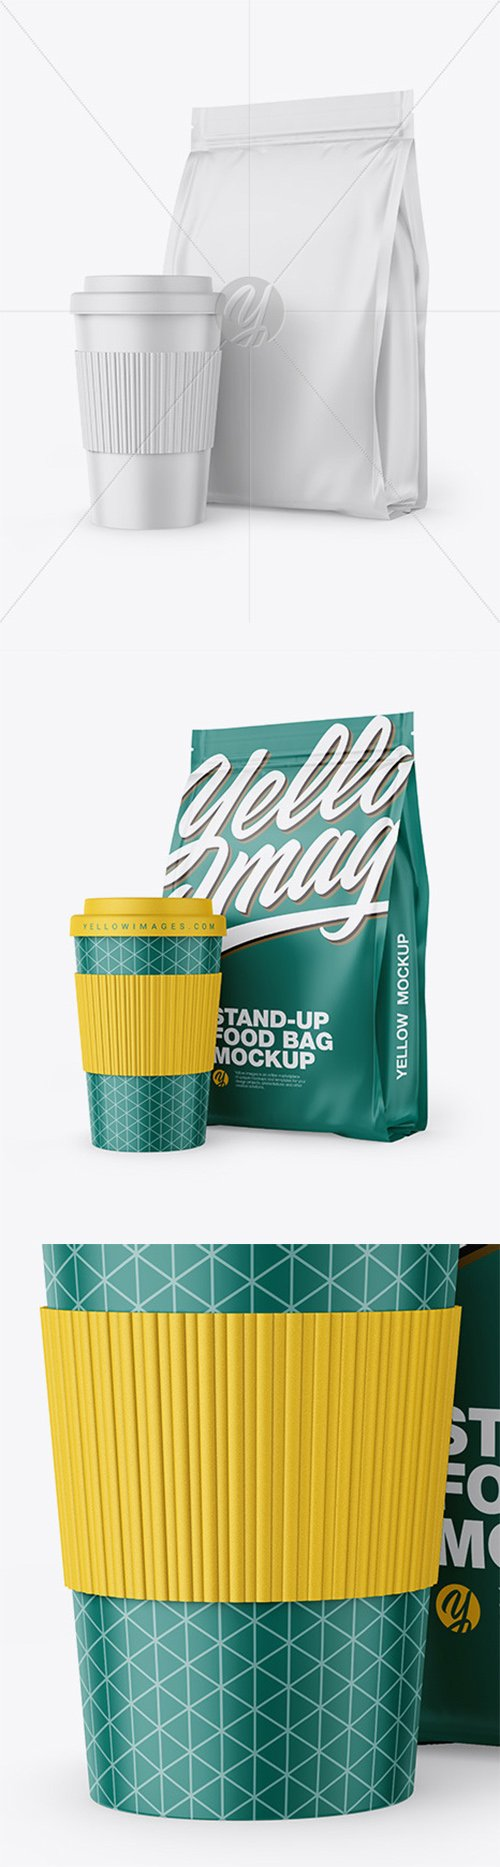 Matte Stand-Up Bag with Coffee Cup Mockup 64586